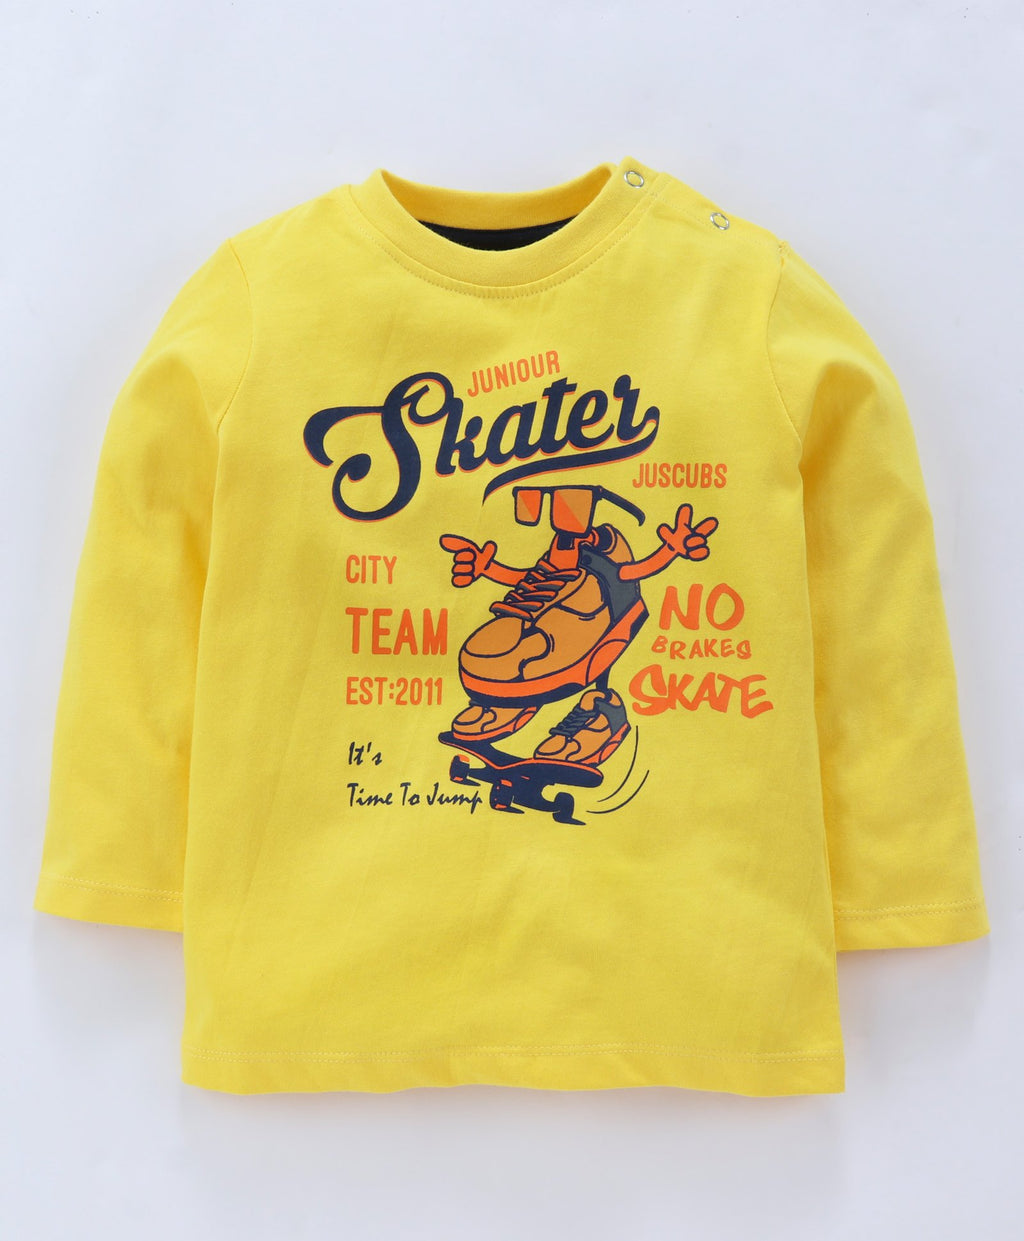 Jus Cubs Skater Printed Full Sleeves Tee - Yellow